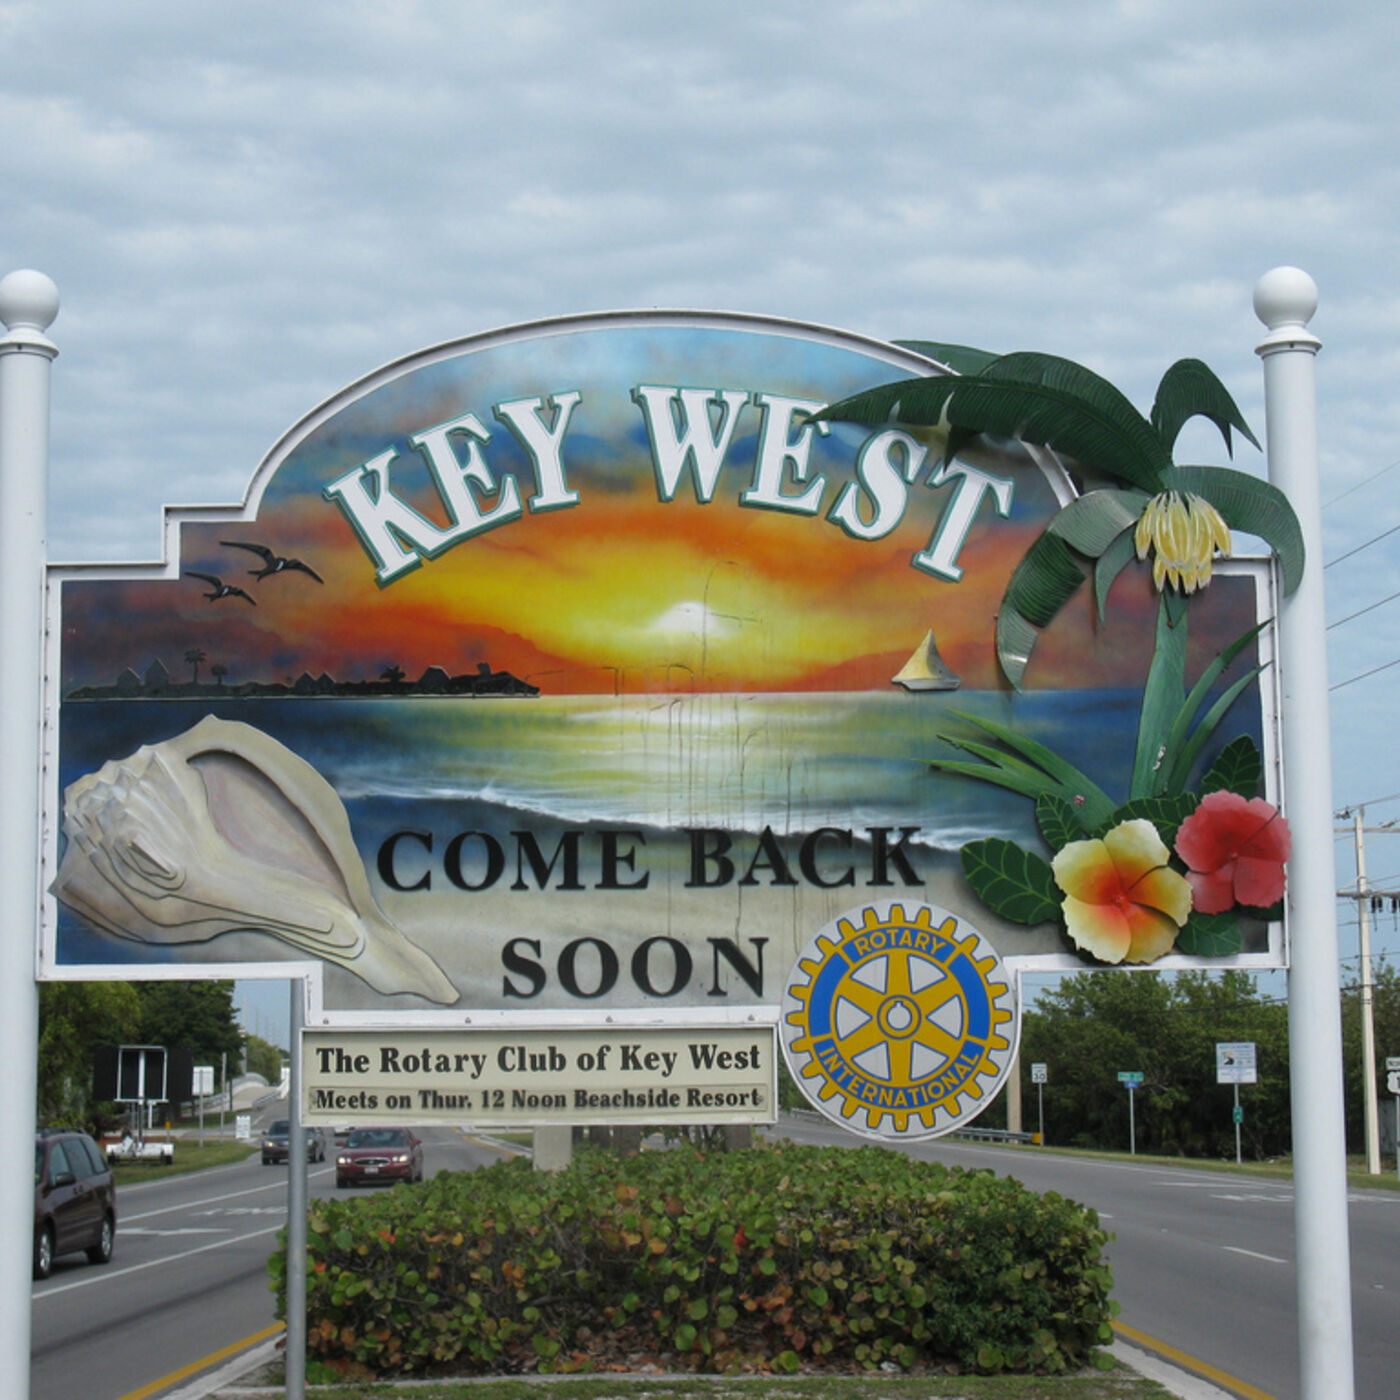 The Key West Story